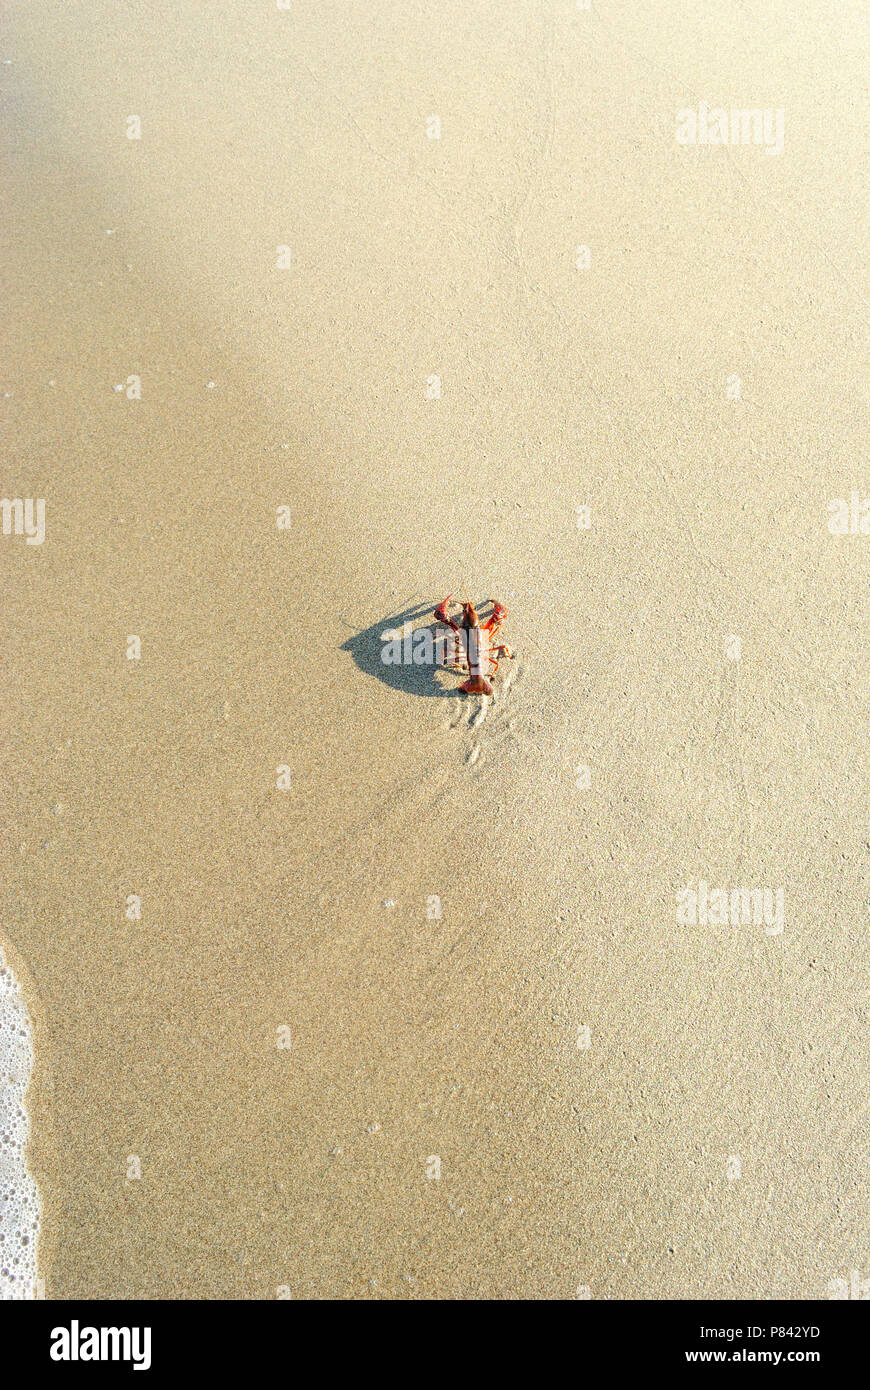 live lobster on the beach, early morning, top view, vertical, large copy space Stock Photo